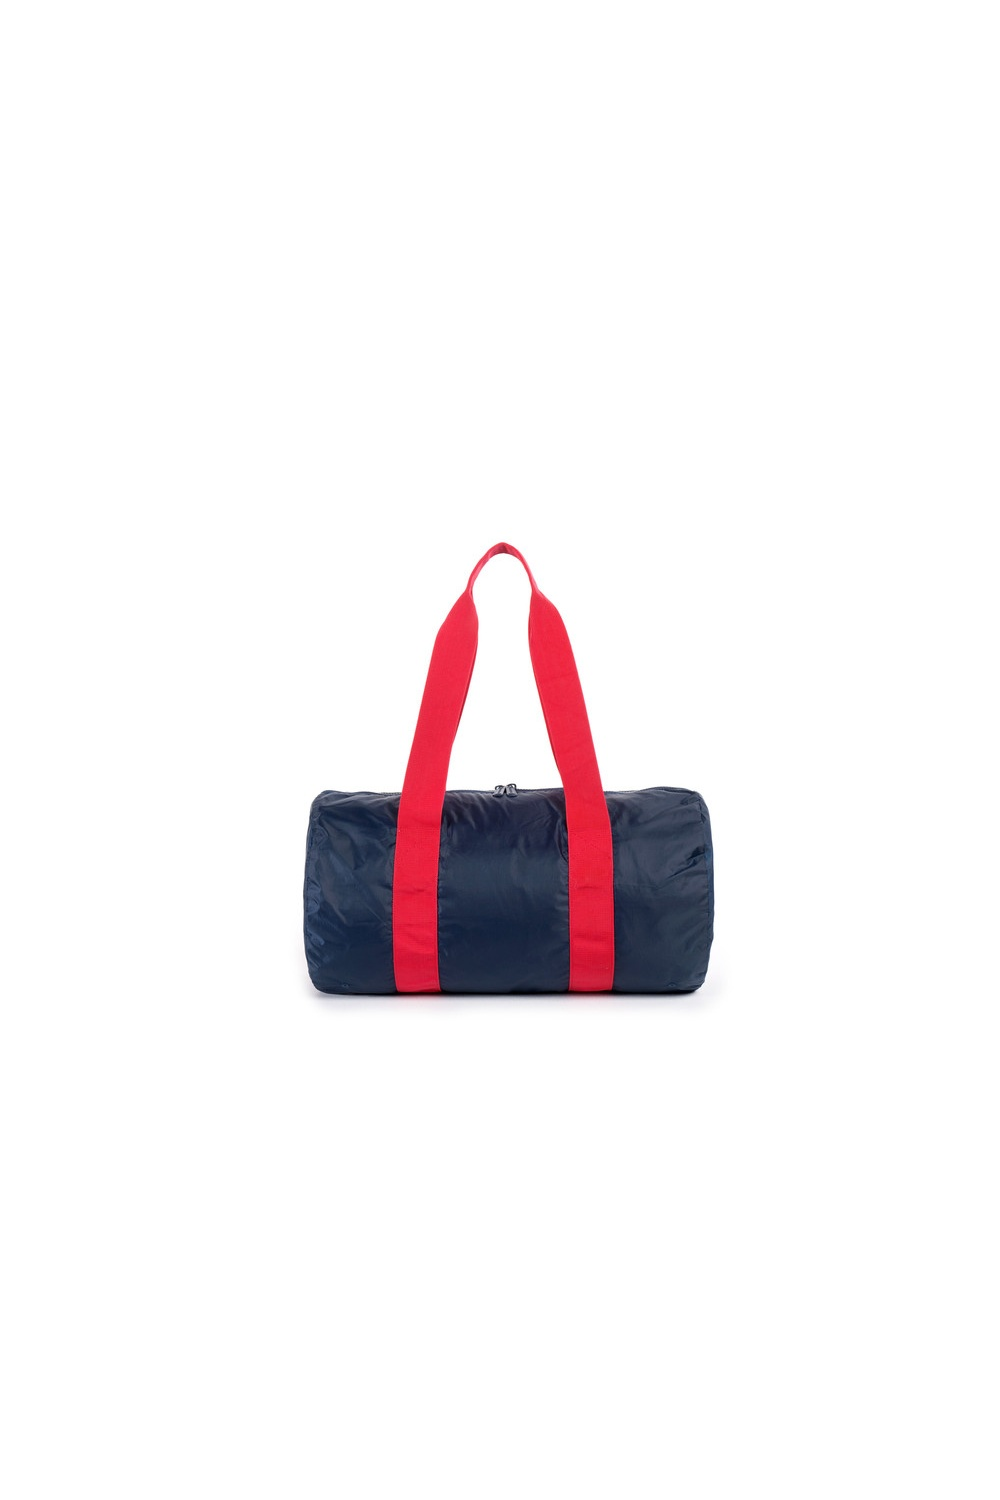 ec5751a2f841 Herschel Supply Co Packable Duffle Bag (Navy Red) - Accessories from ...